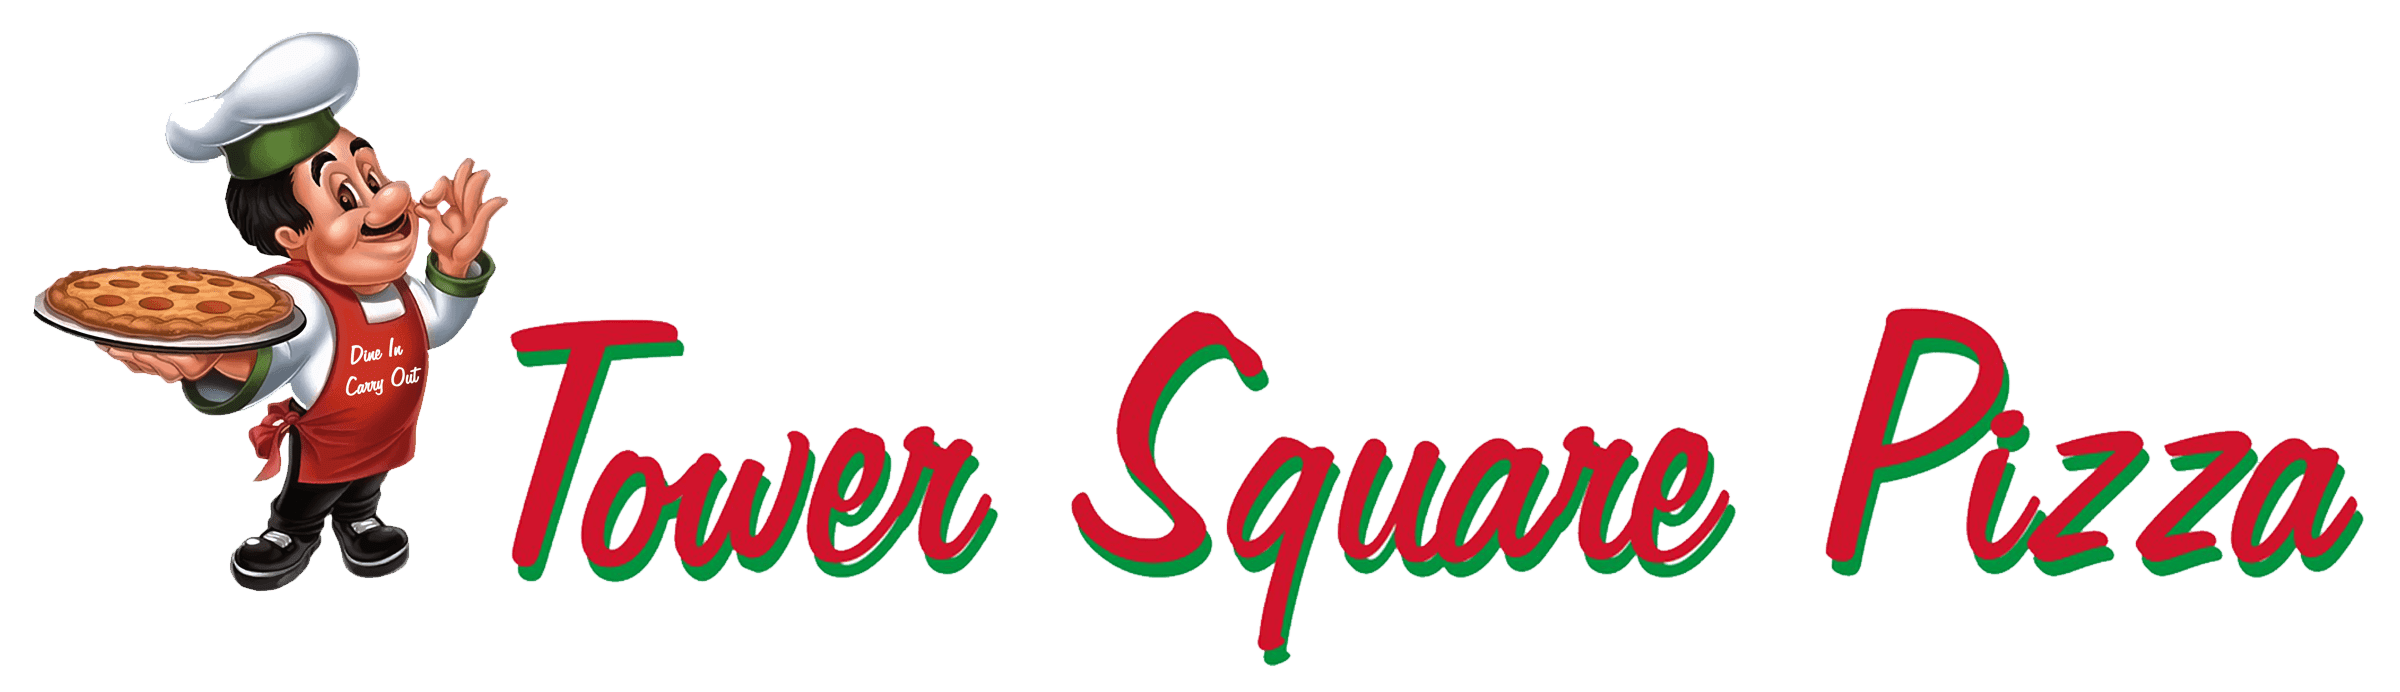 Tower Square Pizza